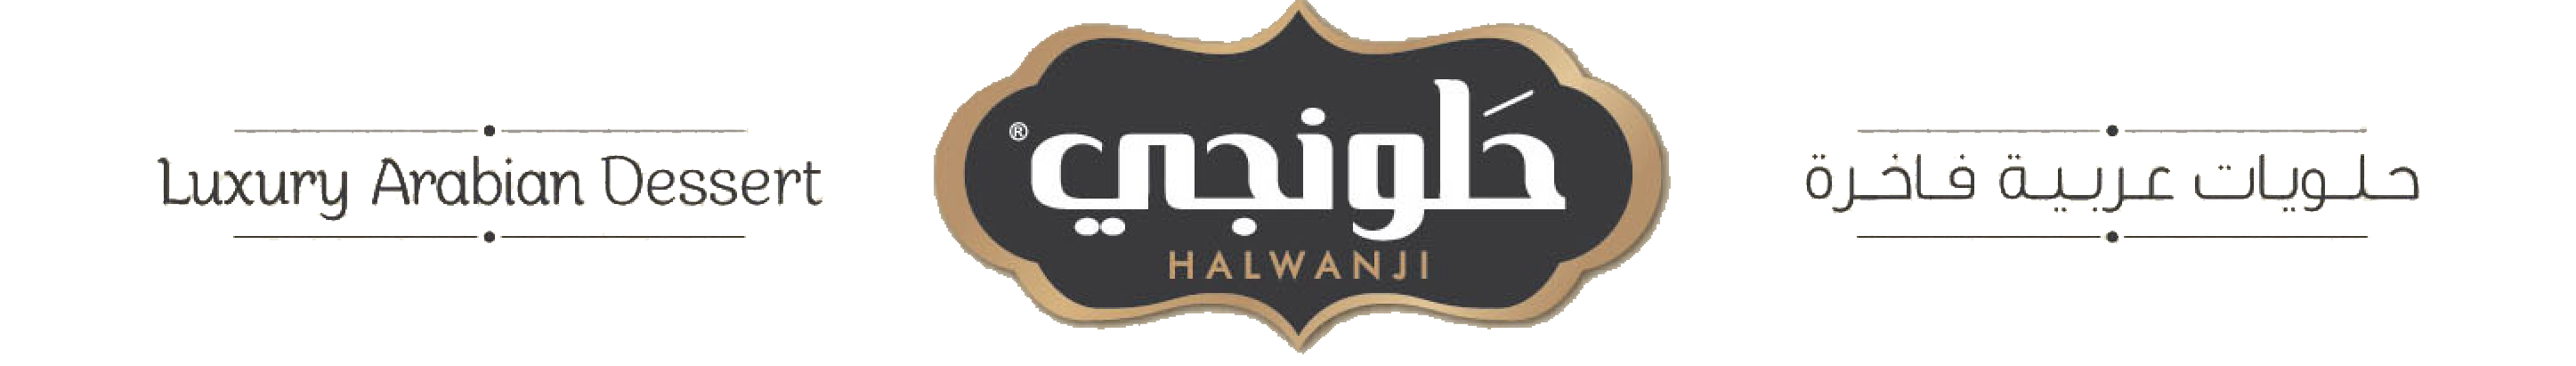 Halwanji website 11jan-1